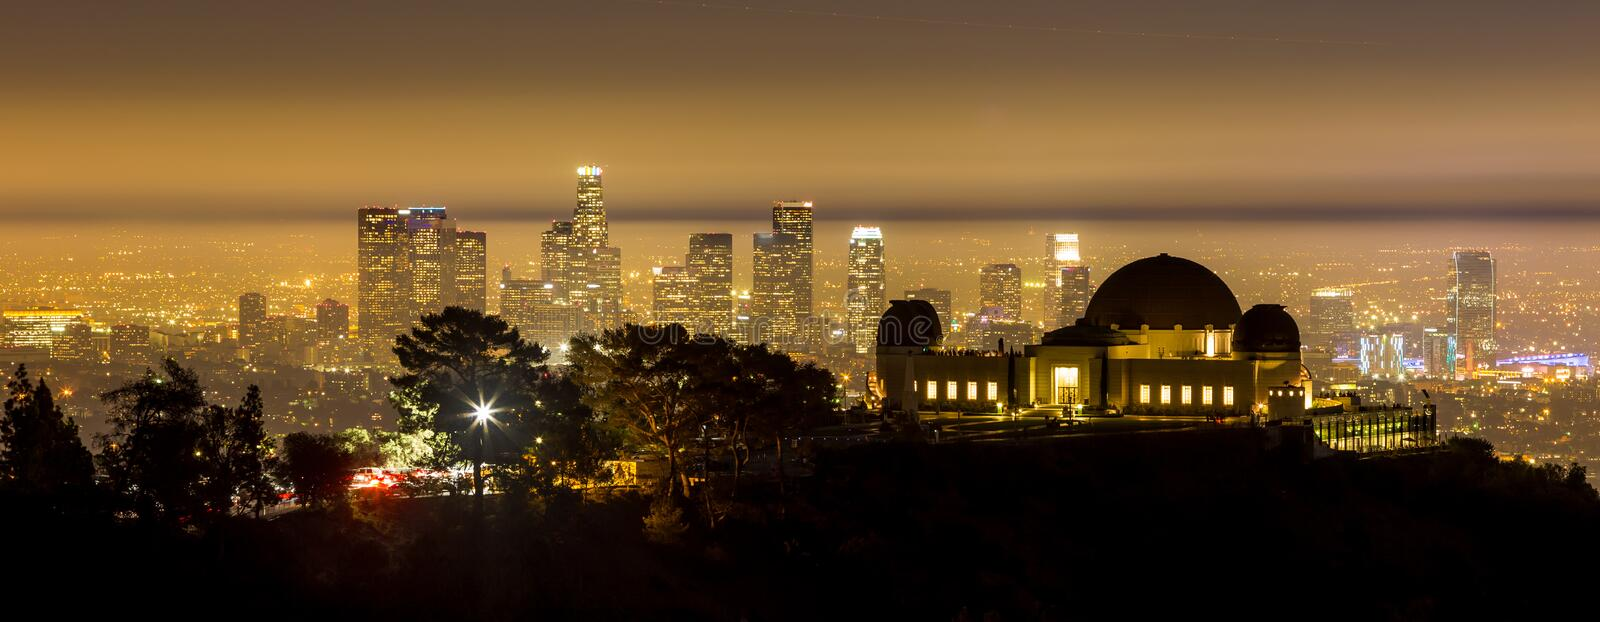 The Griffith Observatory and Los Angeles city skyline at twilight royalty free stock photography